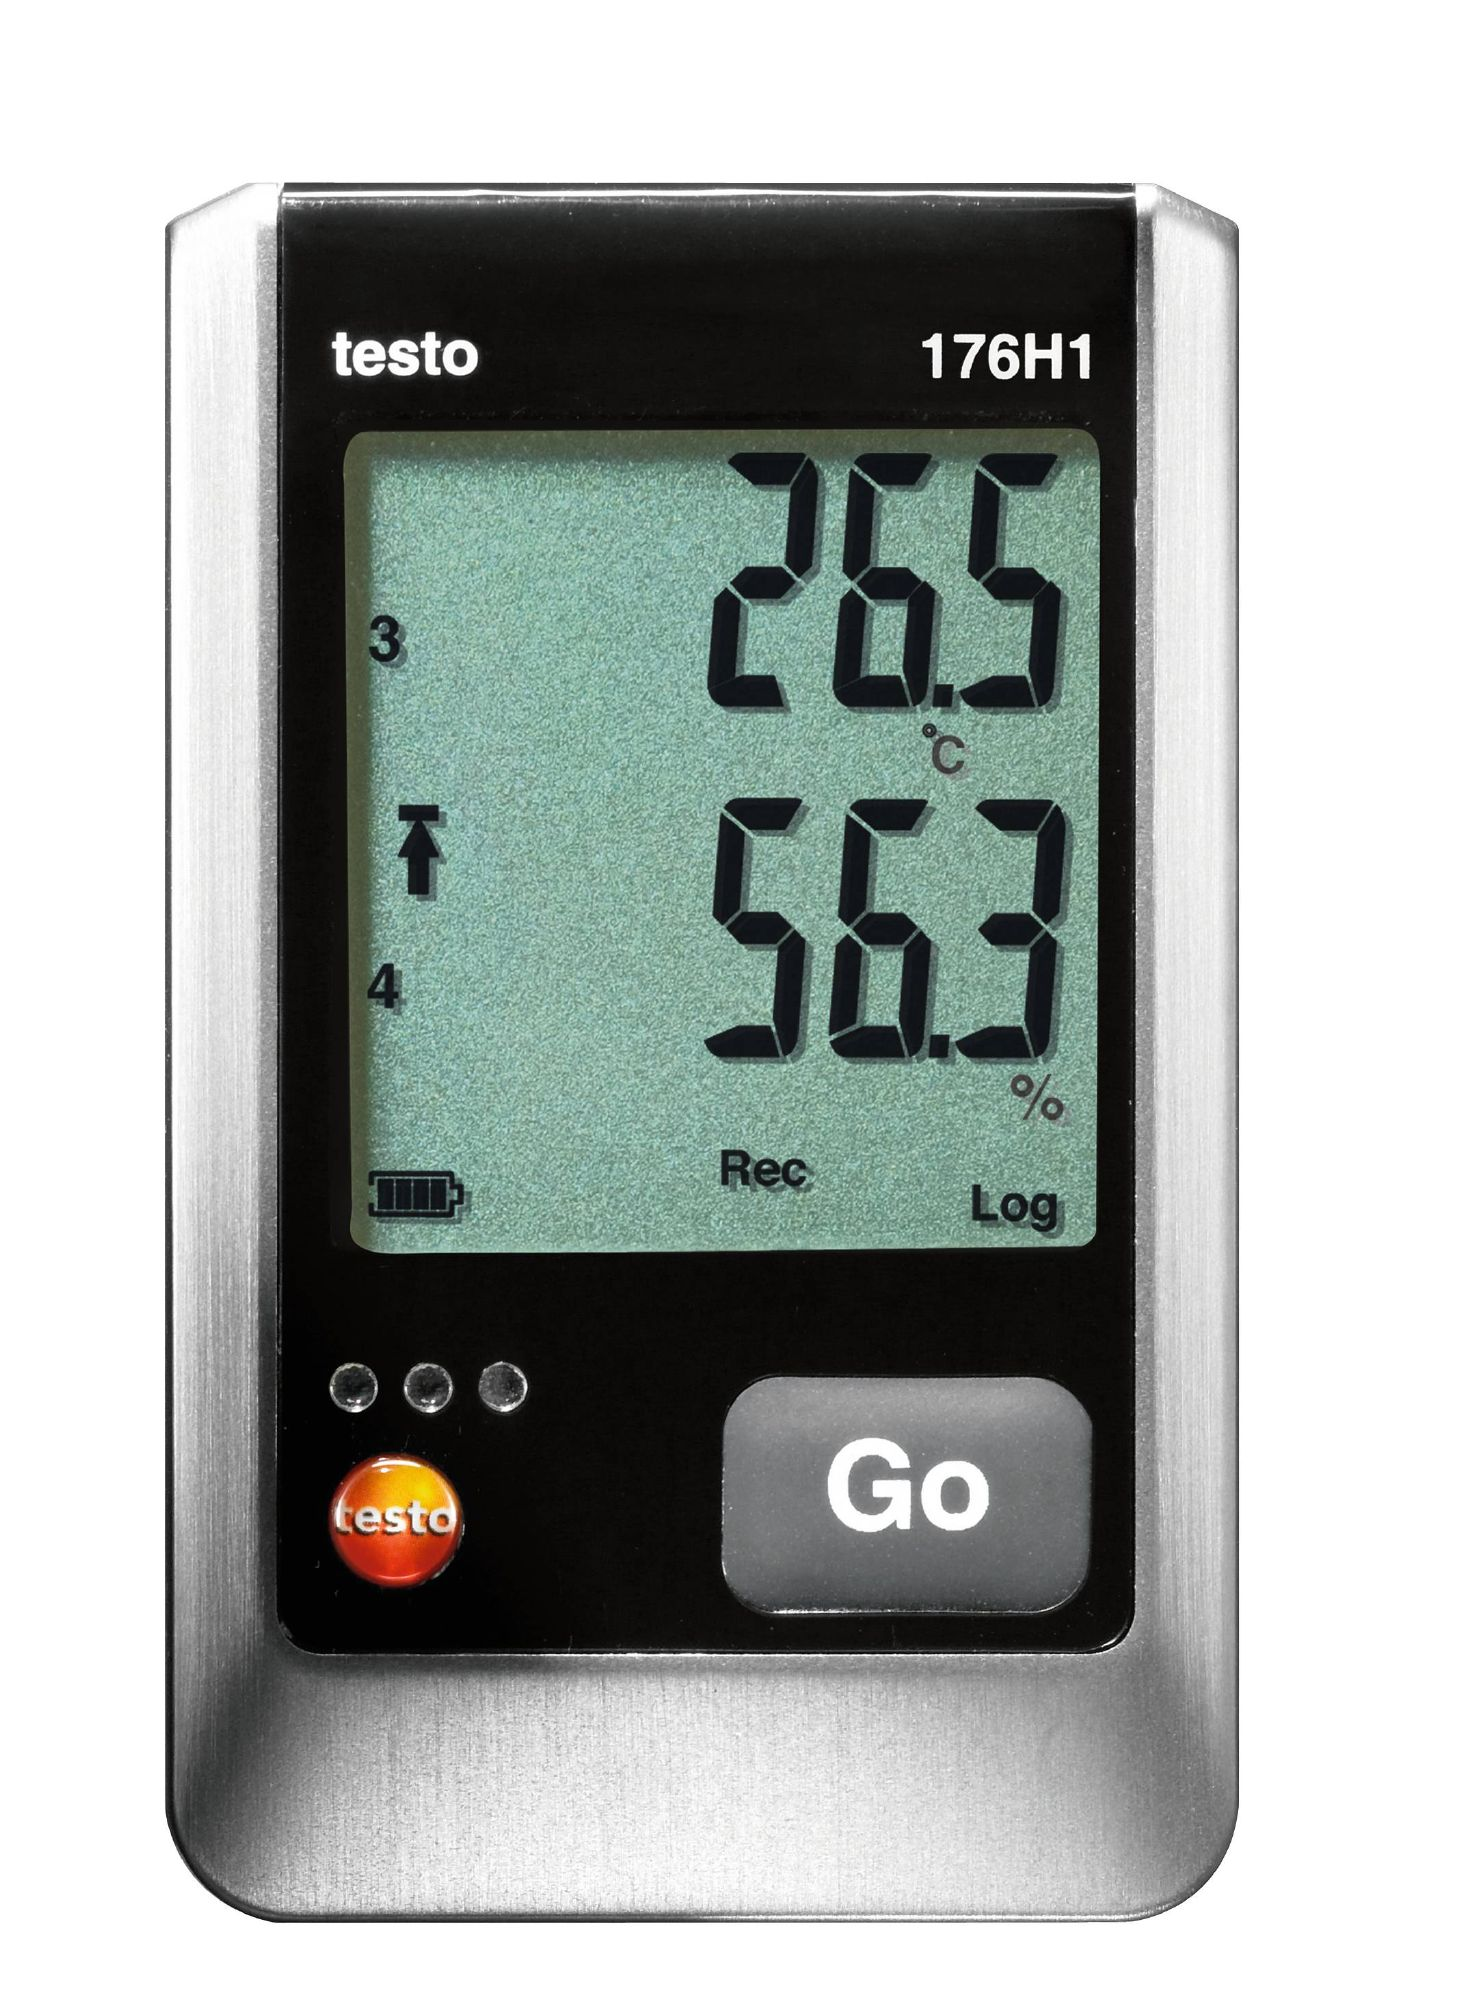 testo-176H-instrument-humidity-001863-bearb.jpg